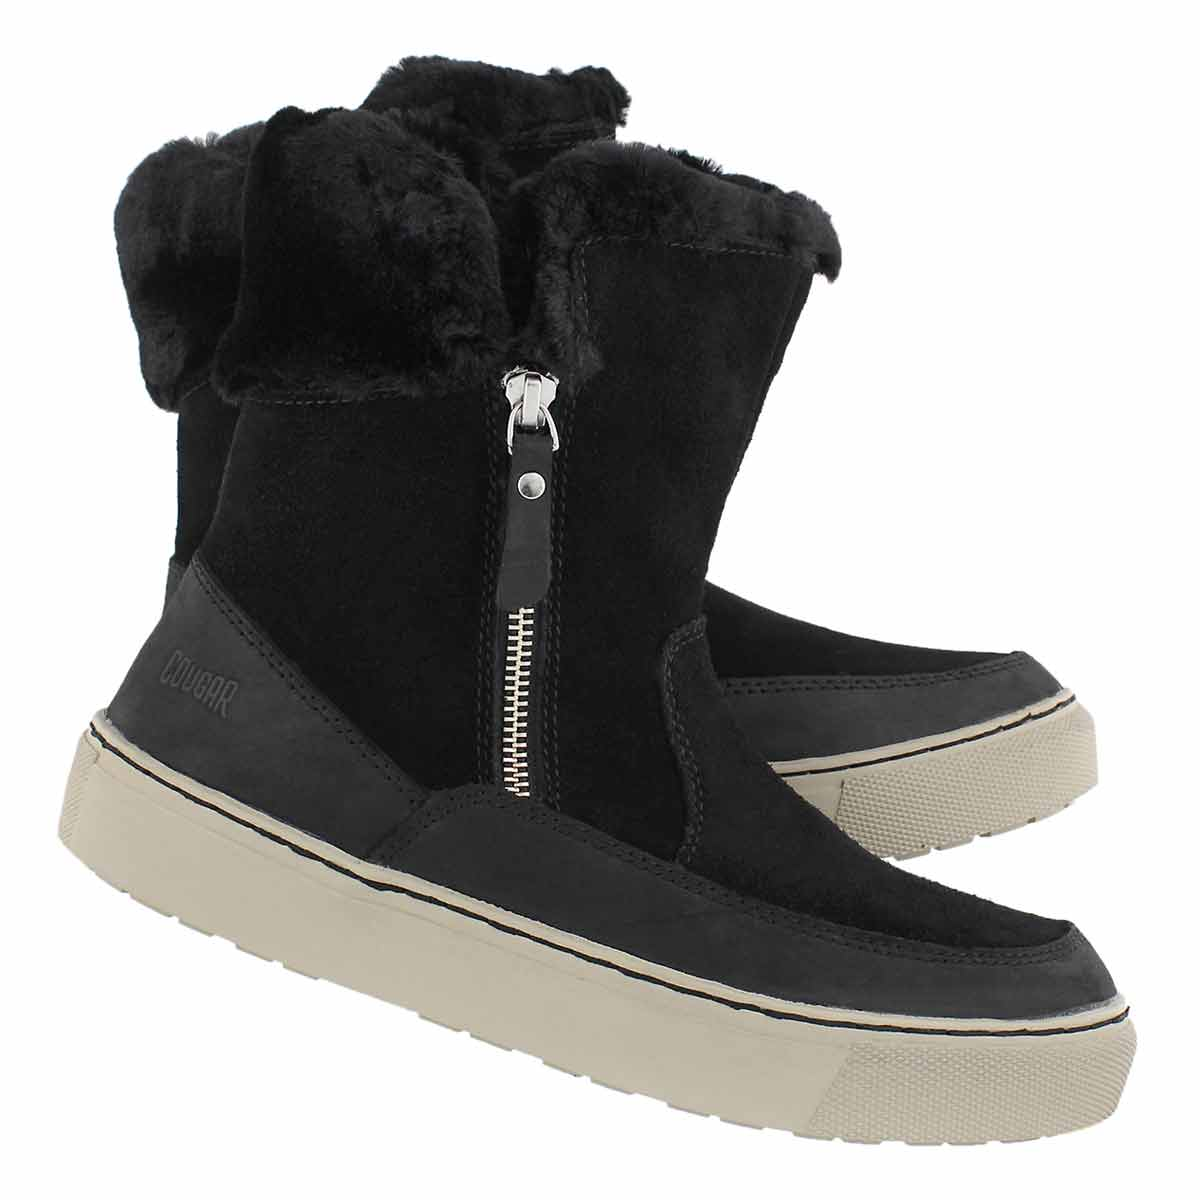 Lds Dresden blk wp side zip winter boot